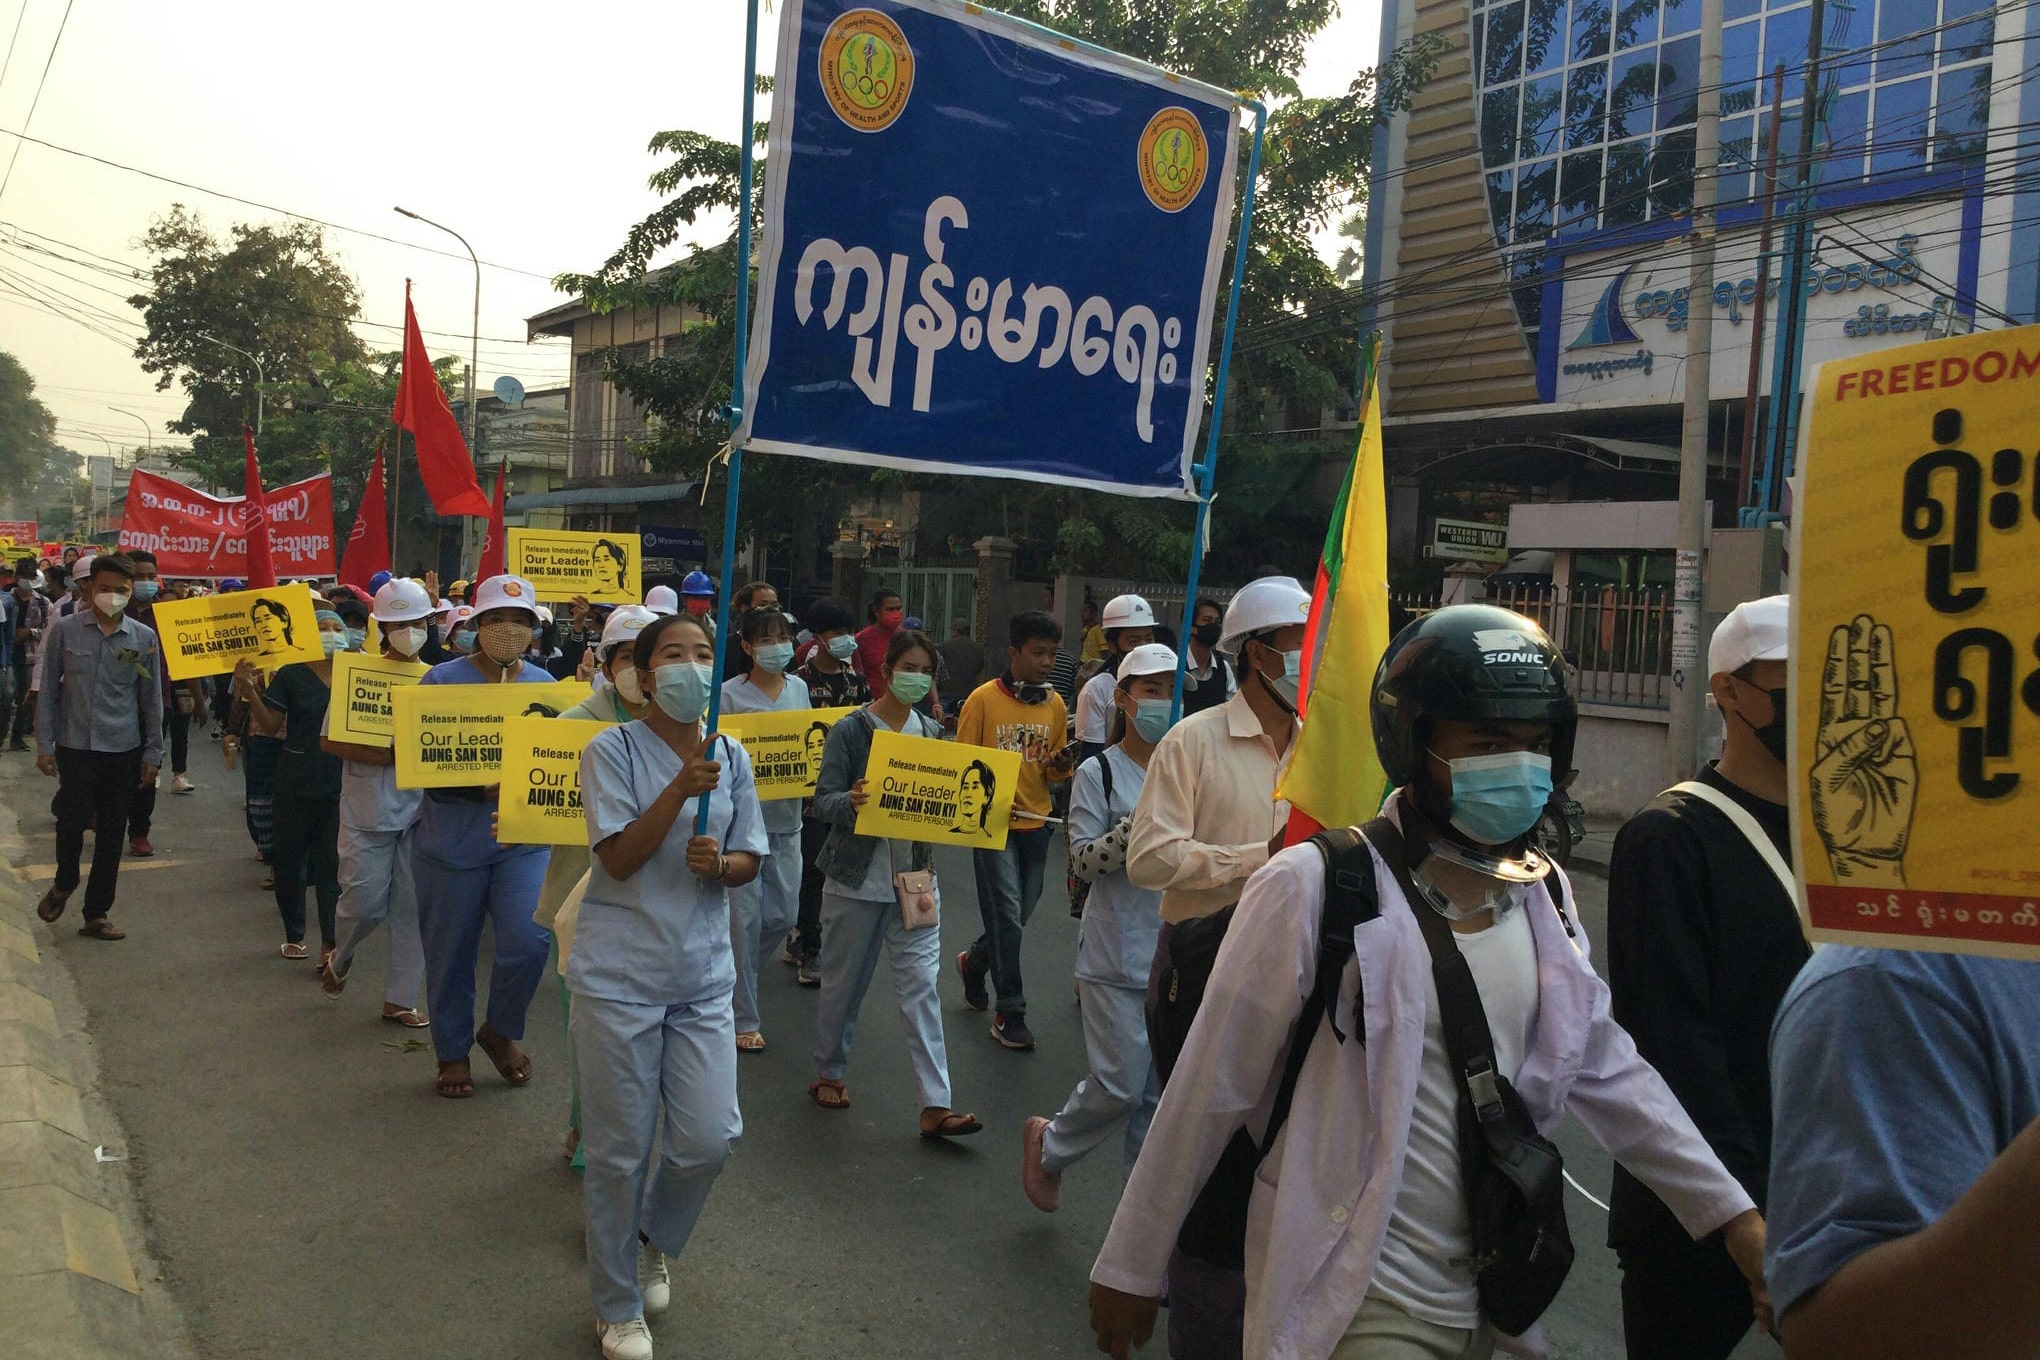 | Monks health and education staff university students at an antidictatorship protest in Amarapura Mandalay March 12 2021 | MR Online